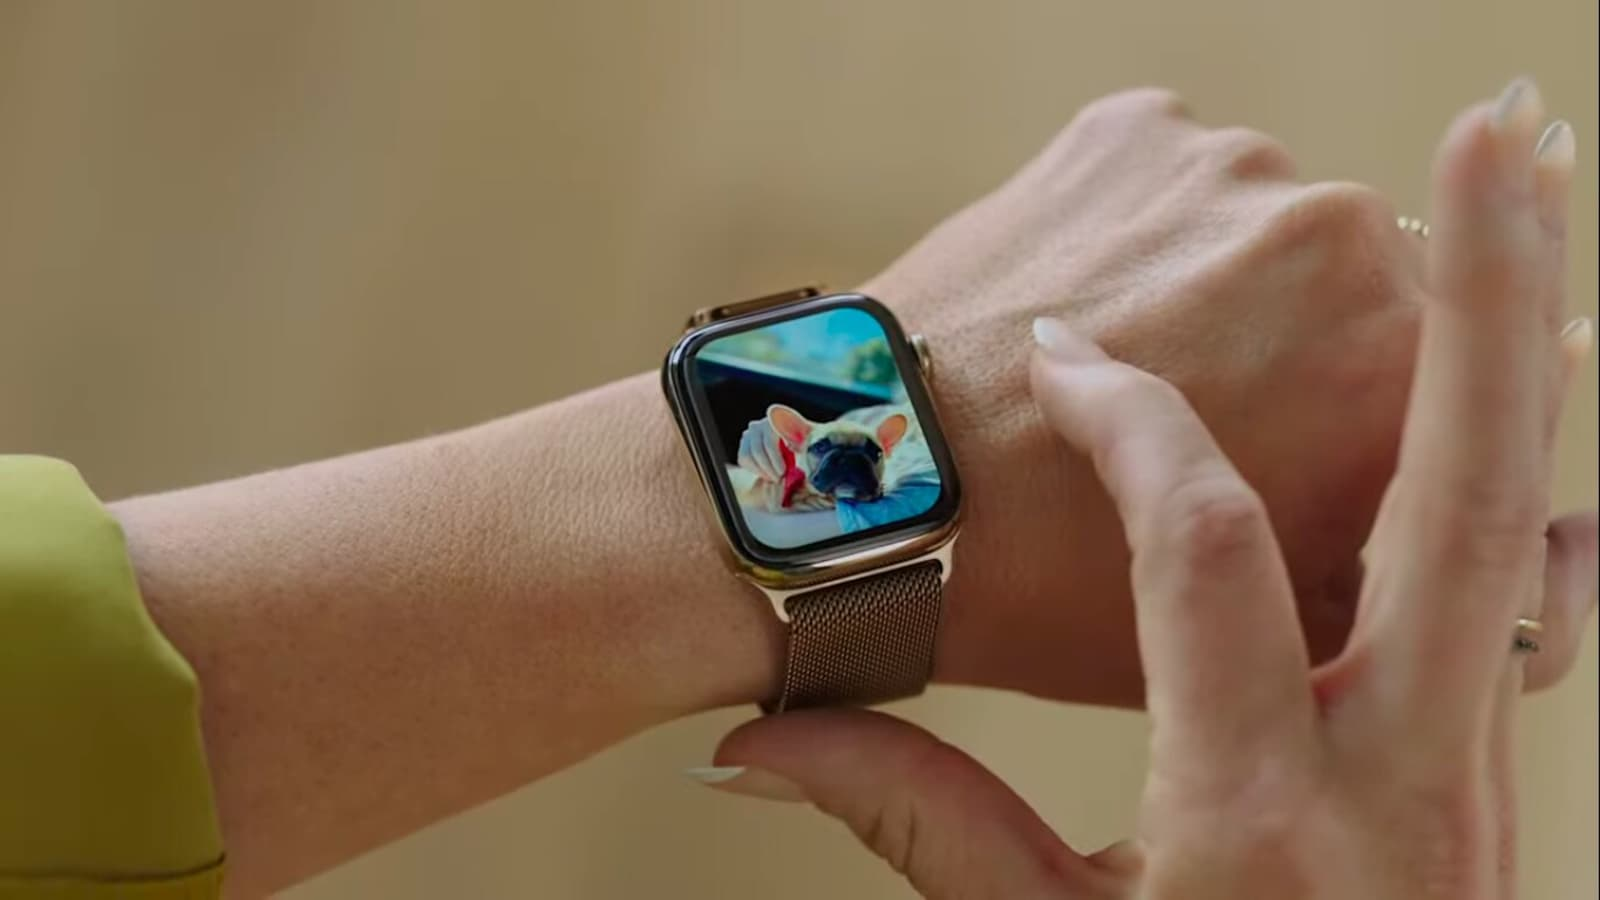 Apple WWDC 2021: watchOS 8 has announced enhanced Photos, Fitness +, GIF support and more